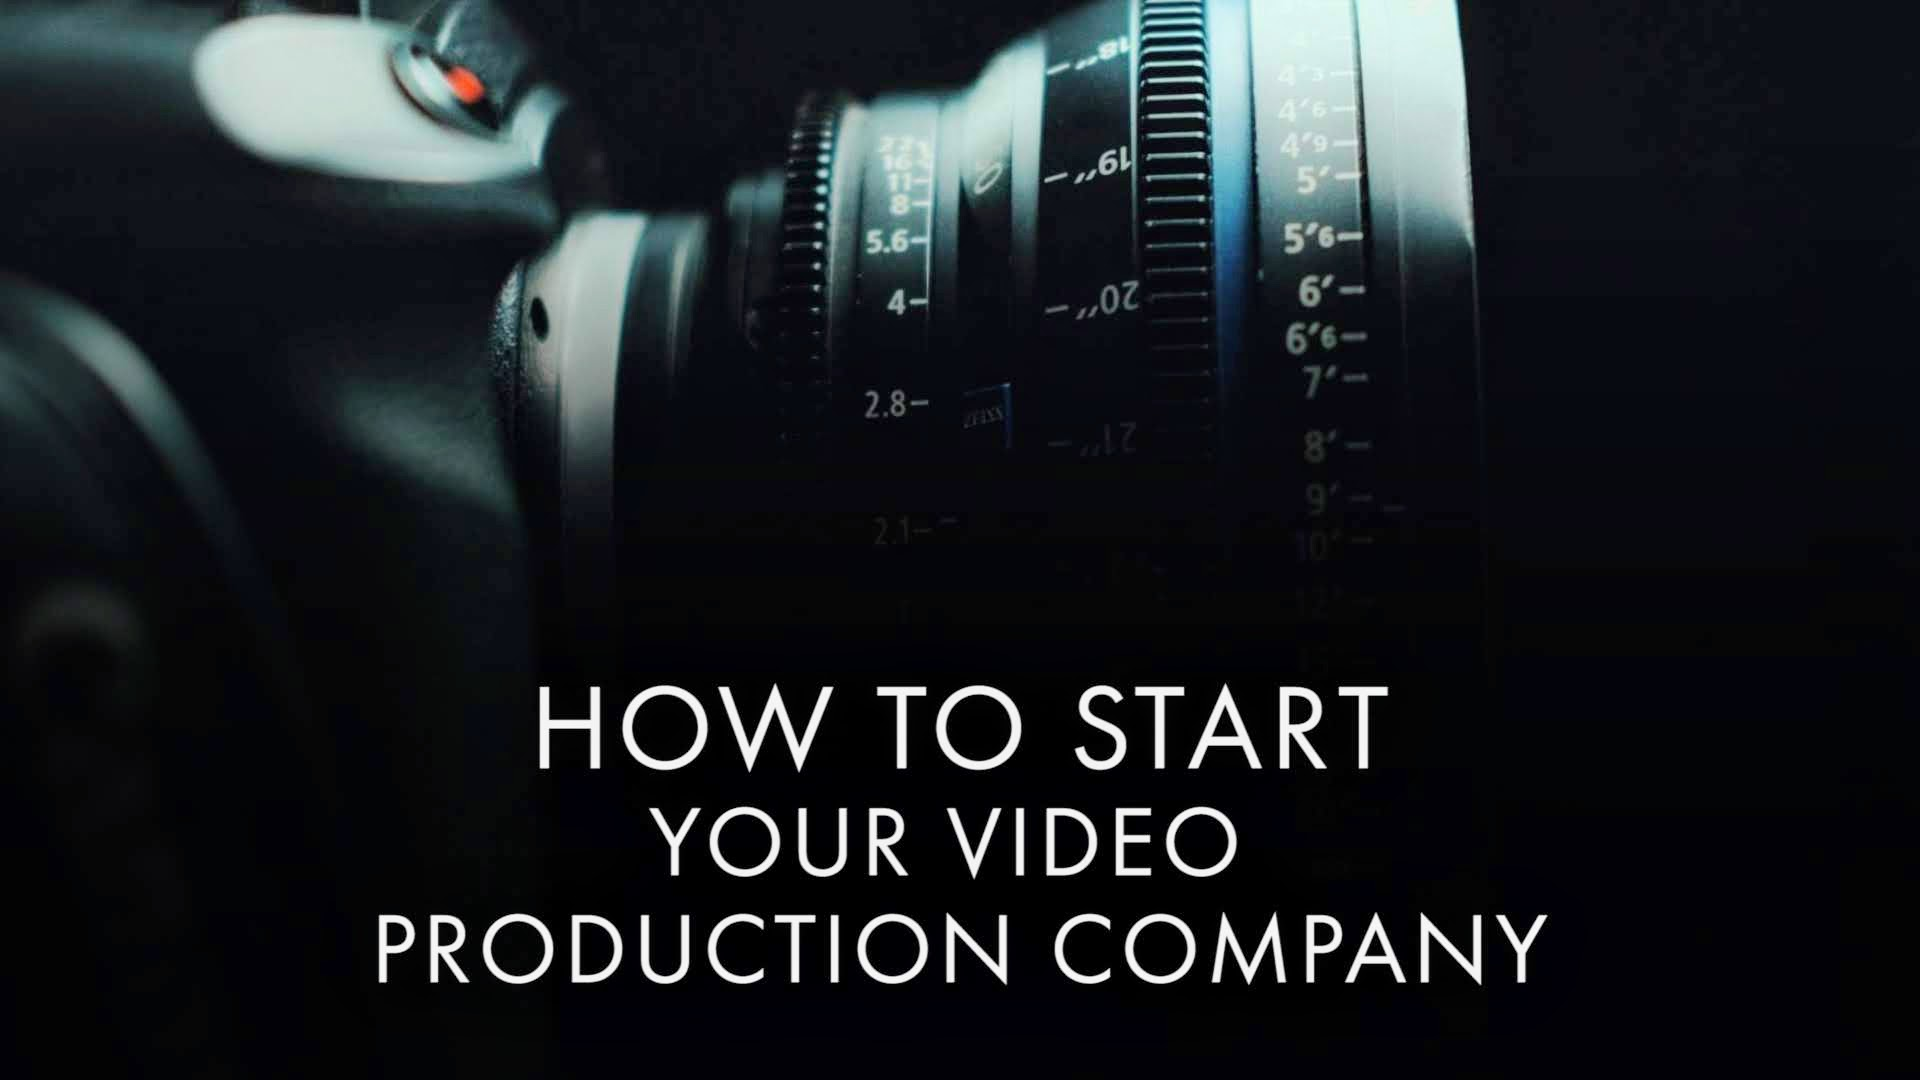 Get ready to take on the world. - The starter kit to running your production company